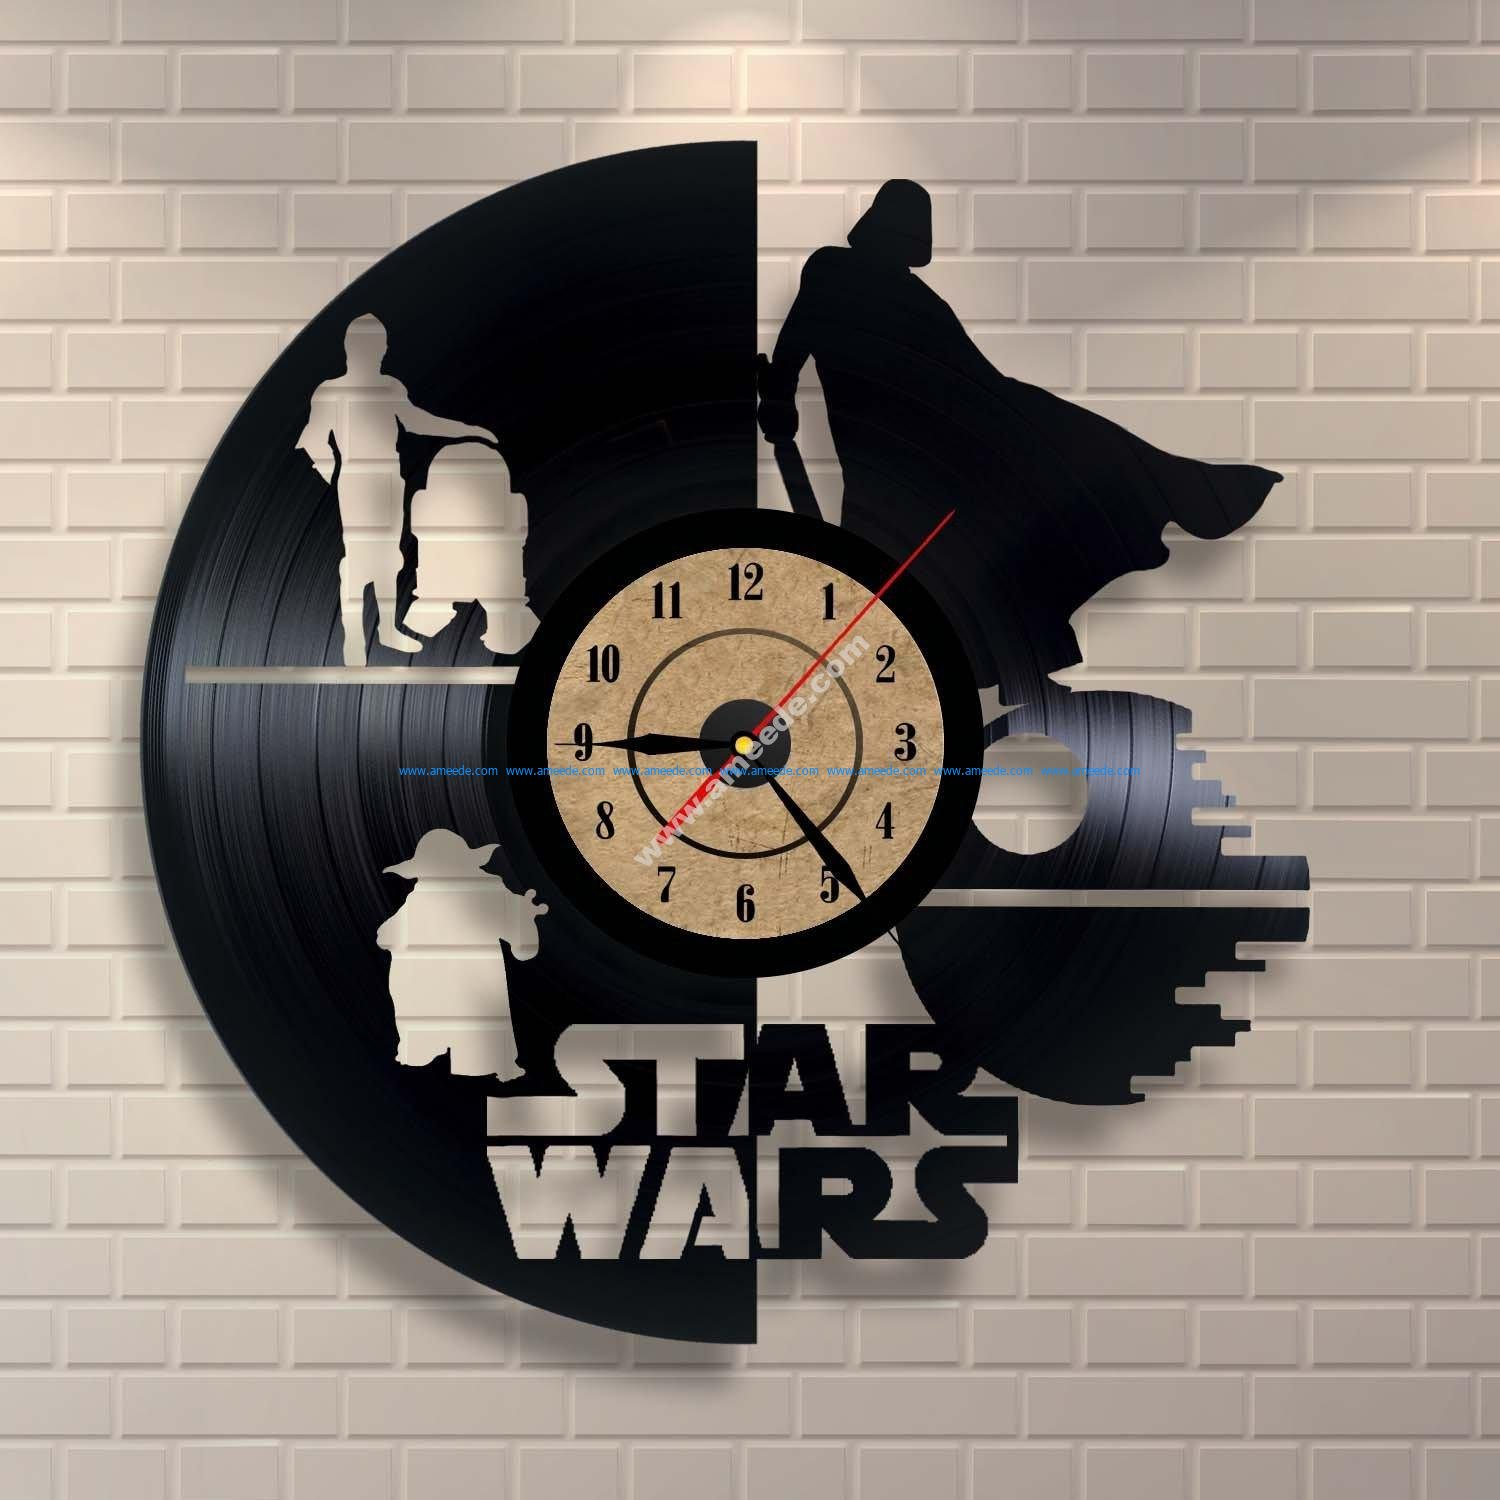 Vinyl Record Clock Star Wars Wall Decor